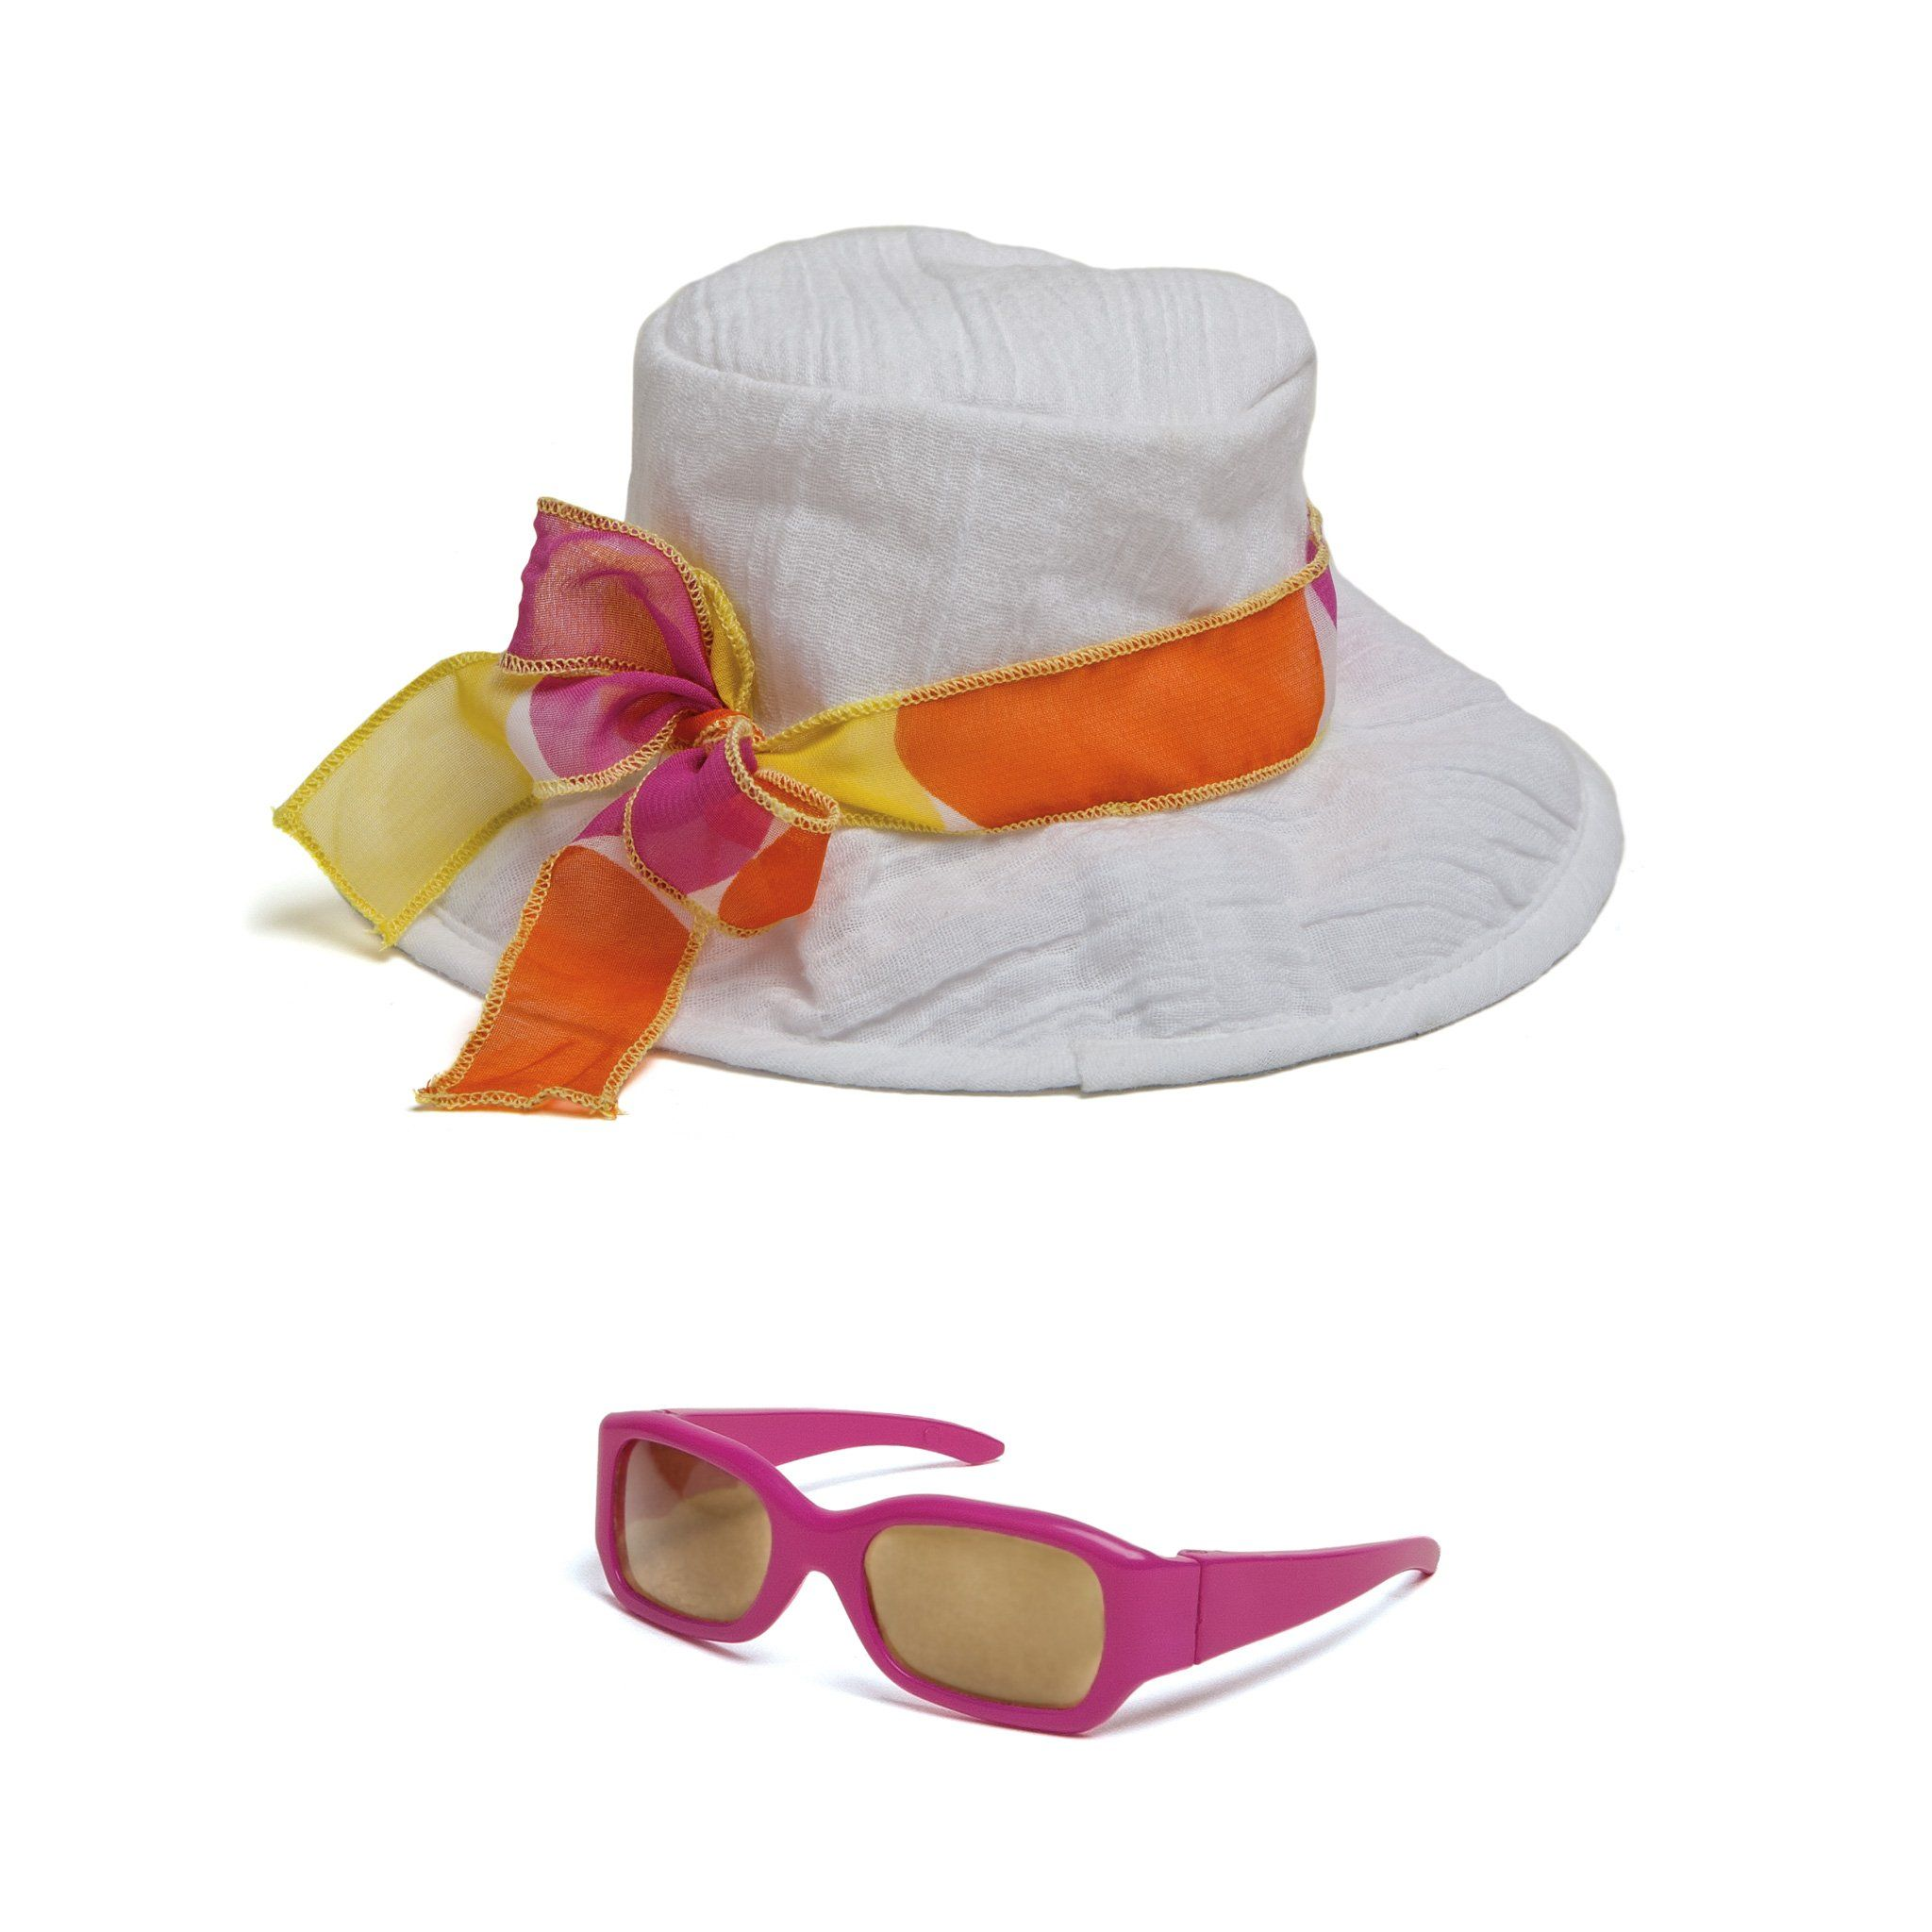 Shoreline Sun white beach hat with colourful tie and pink sunglasses fits all 18 inch dolls.